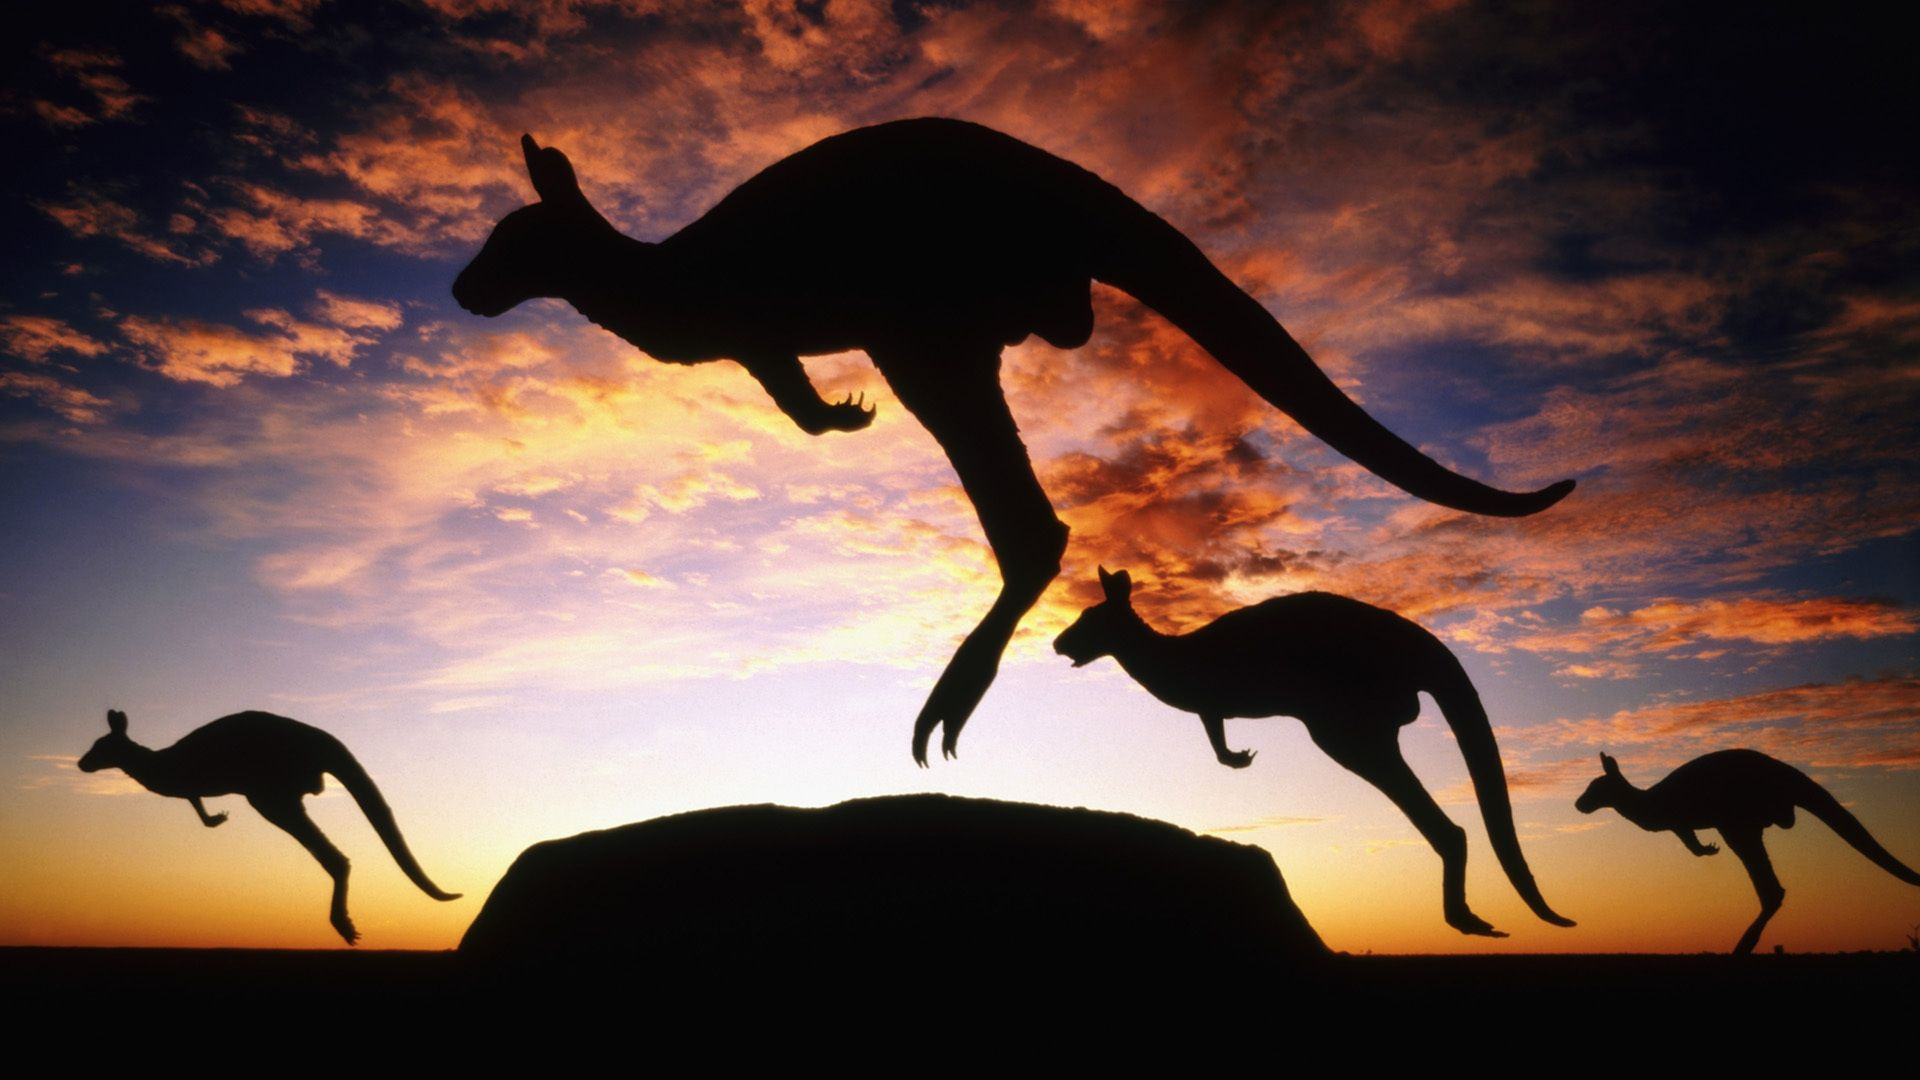 HD Kangaroo Wallpapers and Photos HD Animals Wallpapers